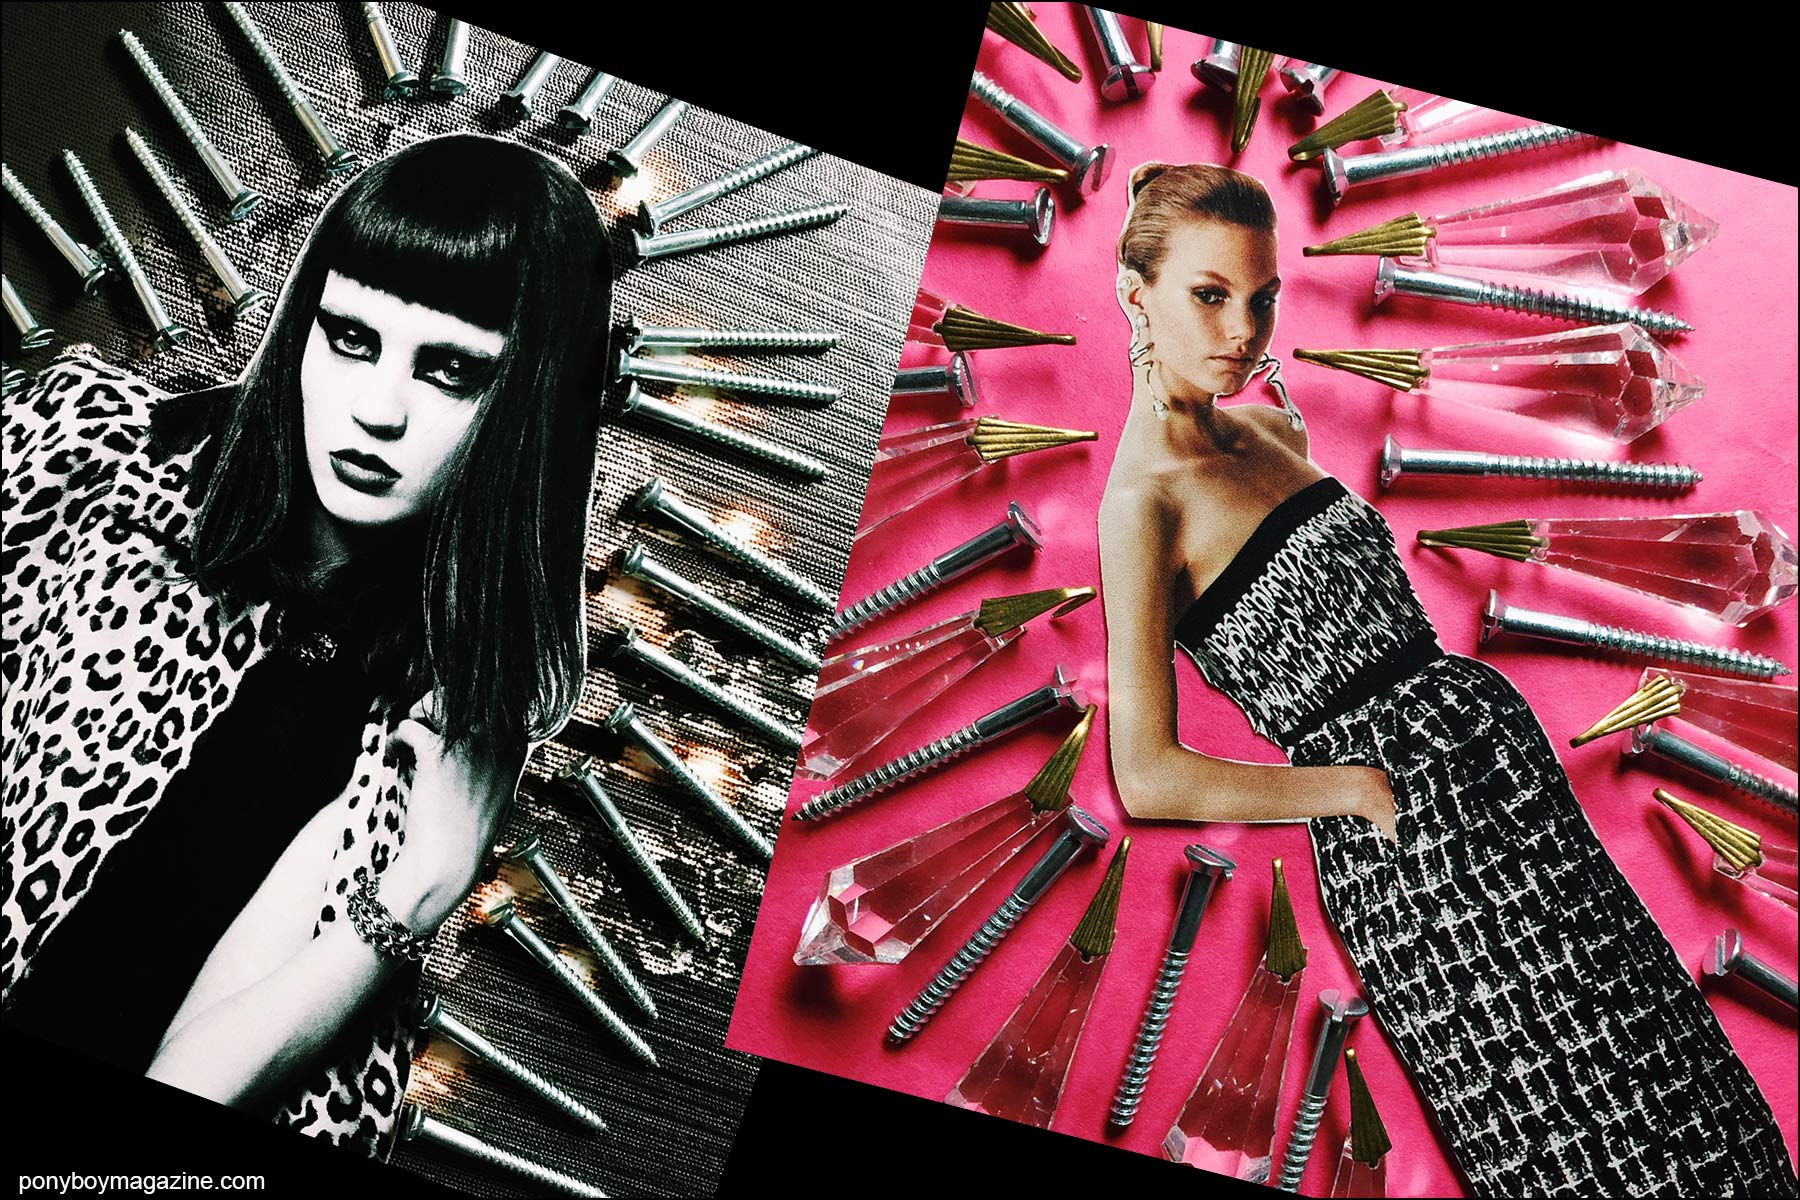 Collage artwork of Saint Laurent and Balenciaga images by Patrick Keohane for RS Theory. Ponyboy magazine NY.